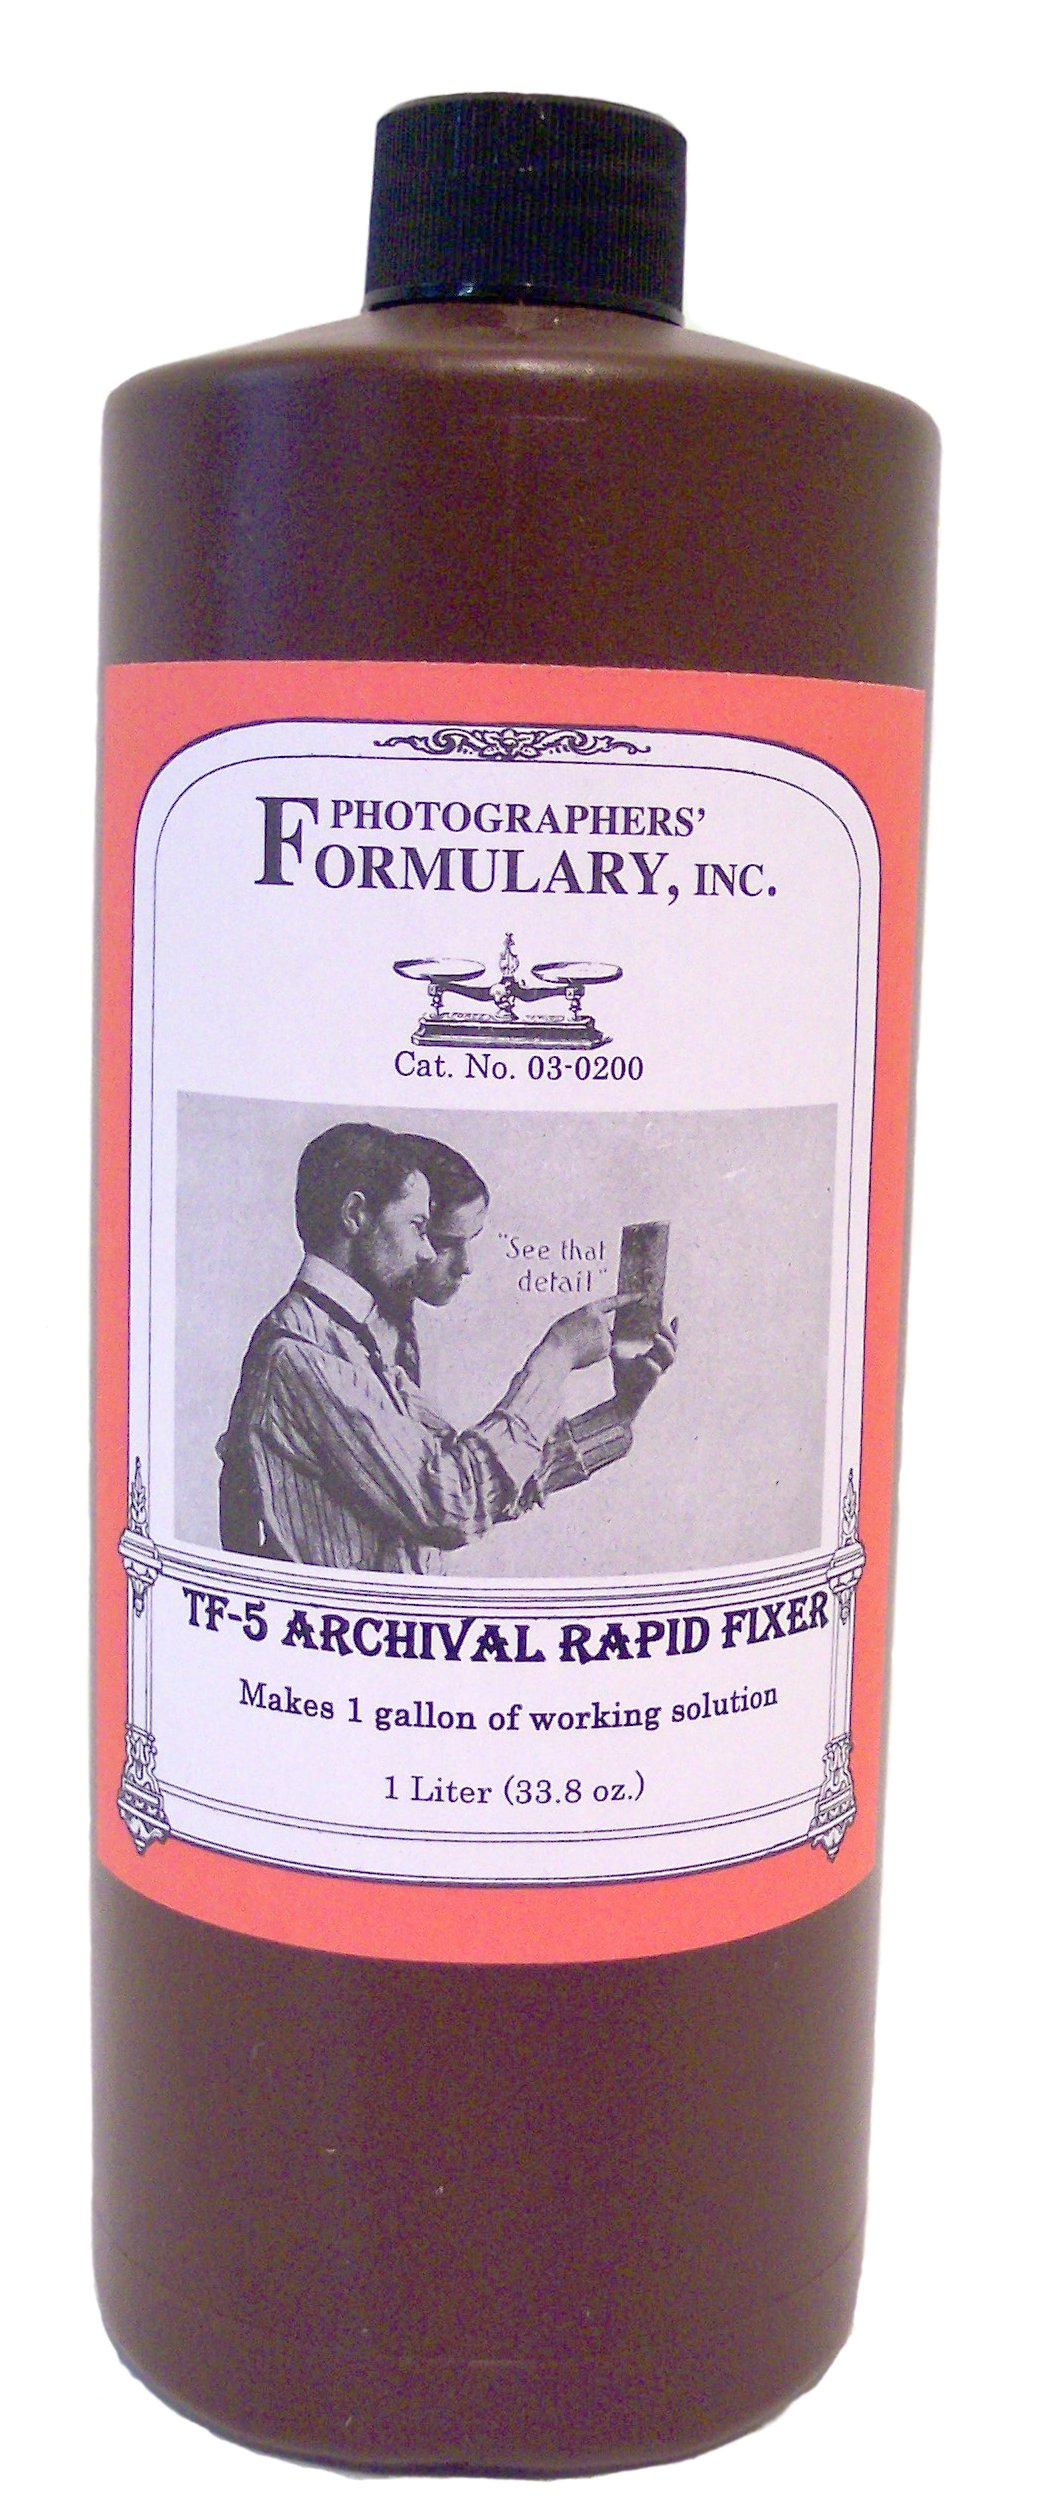 Photographers' Formulary 03-0200 TF-5 Archival Rapid Fixer for Darkroom by Photographers' Formulary